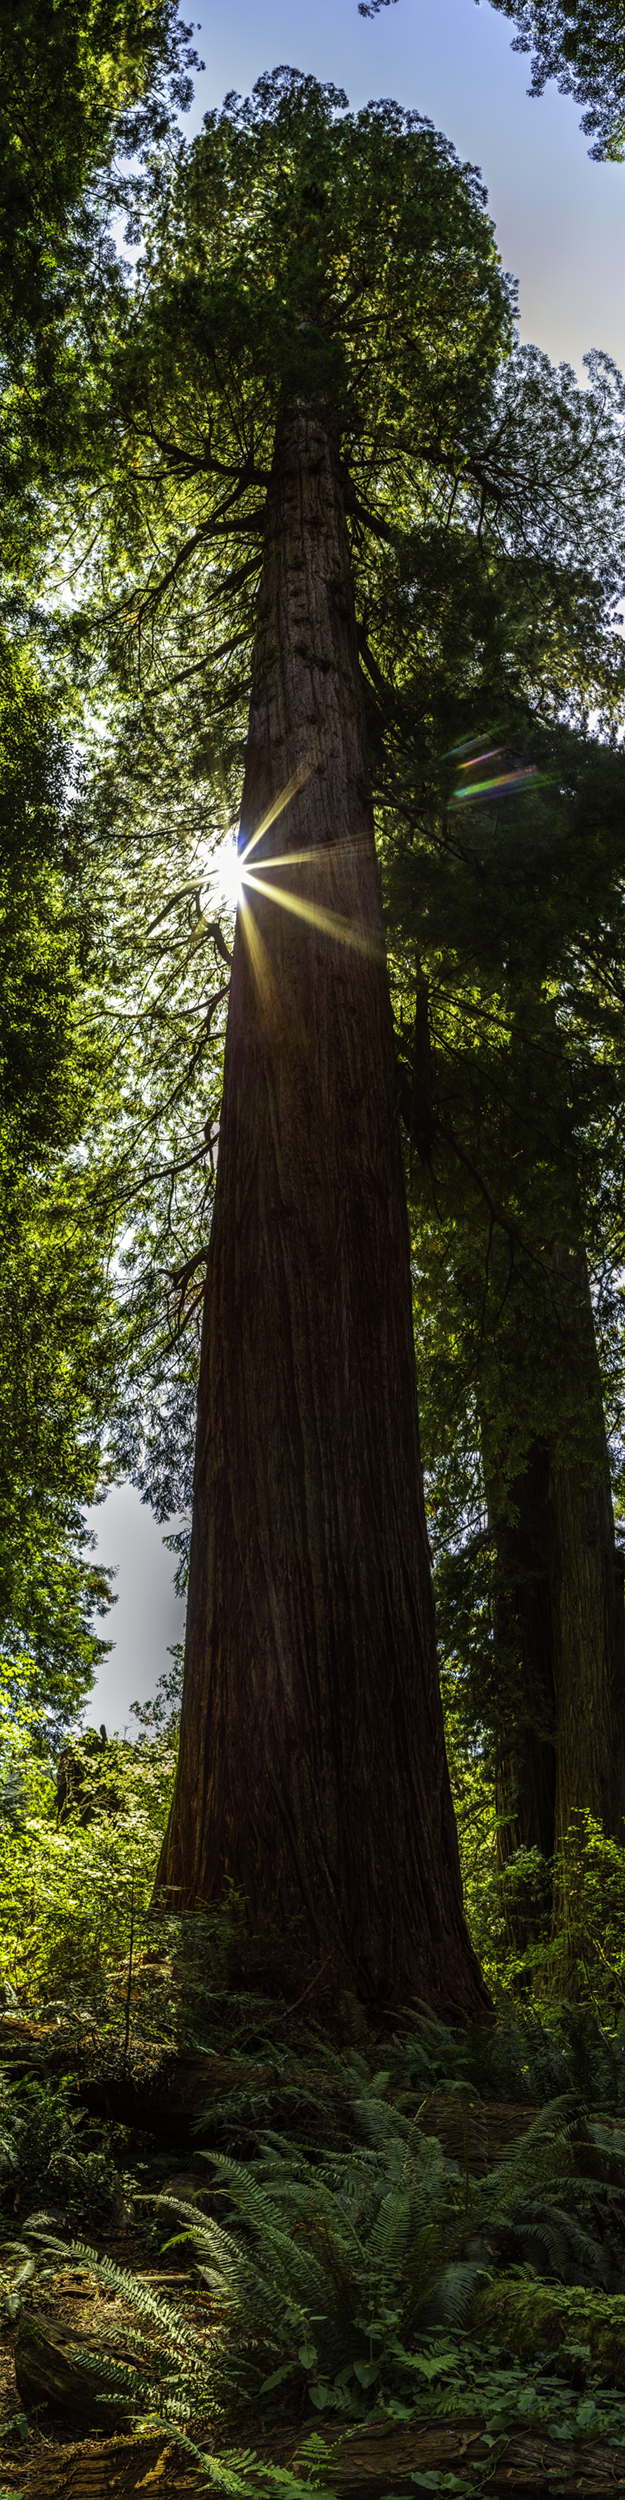 Magnificent Redwood